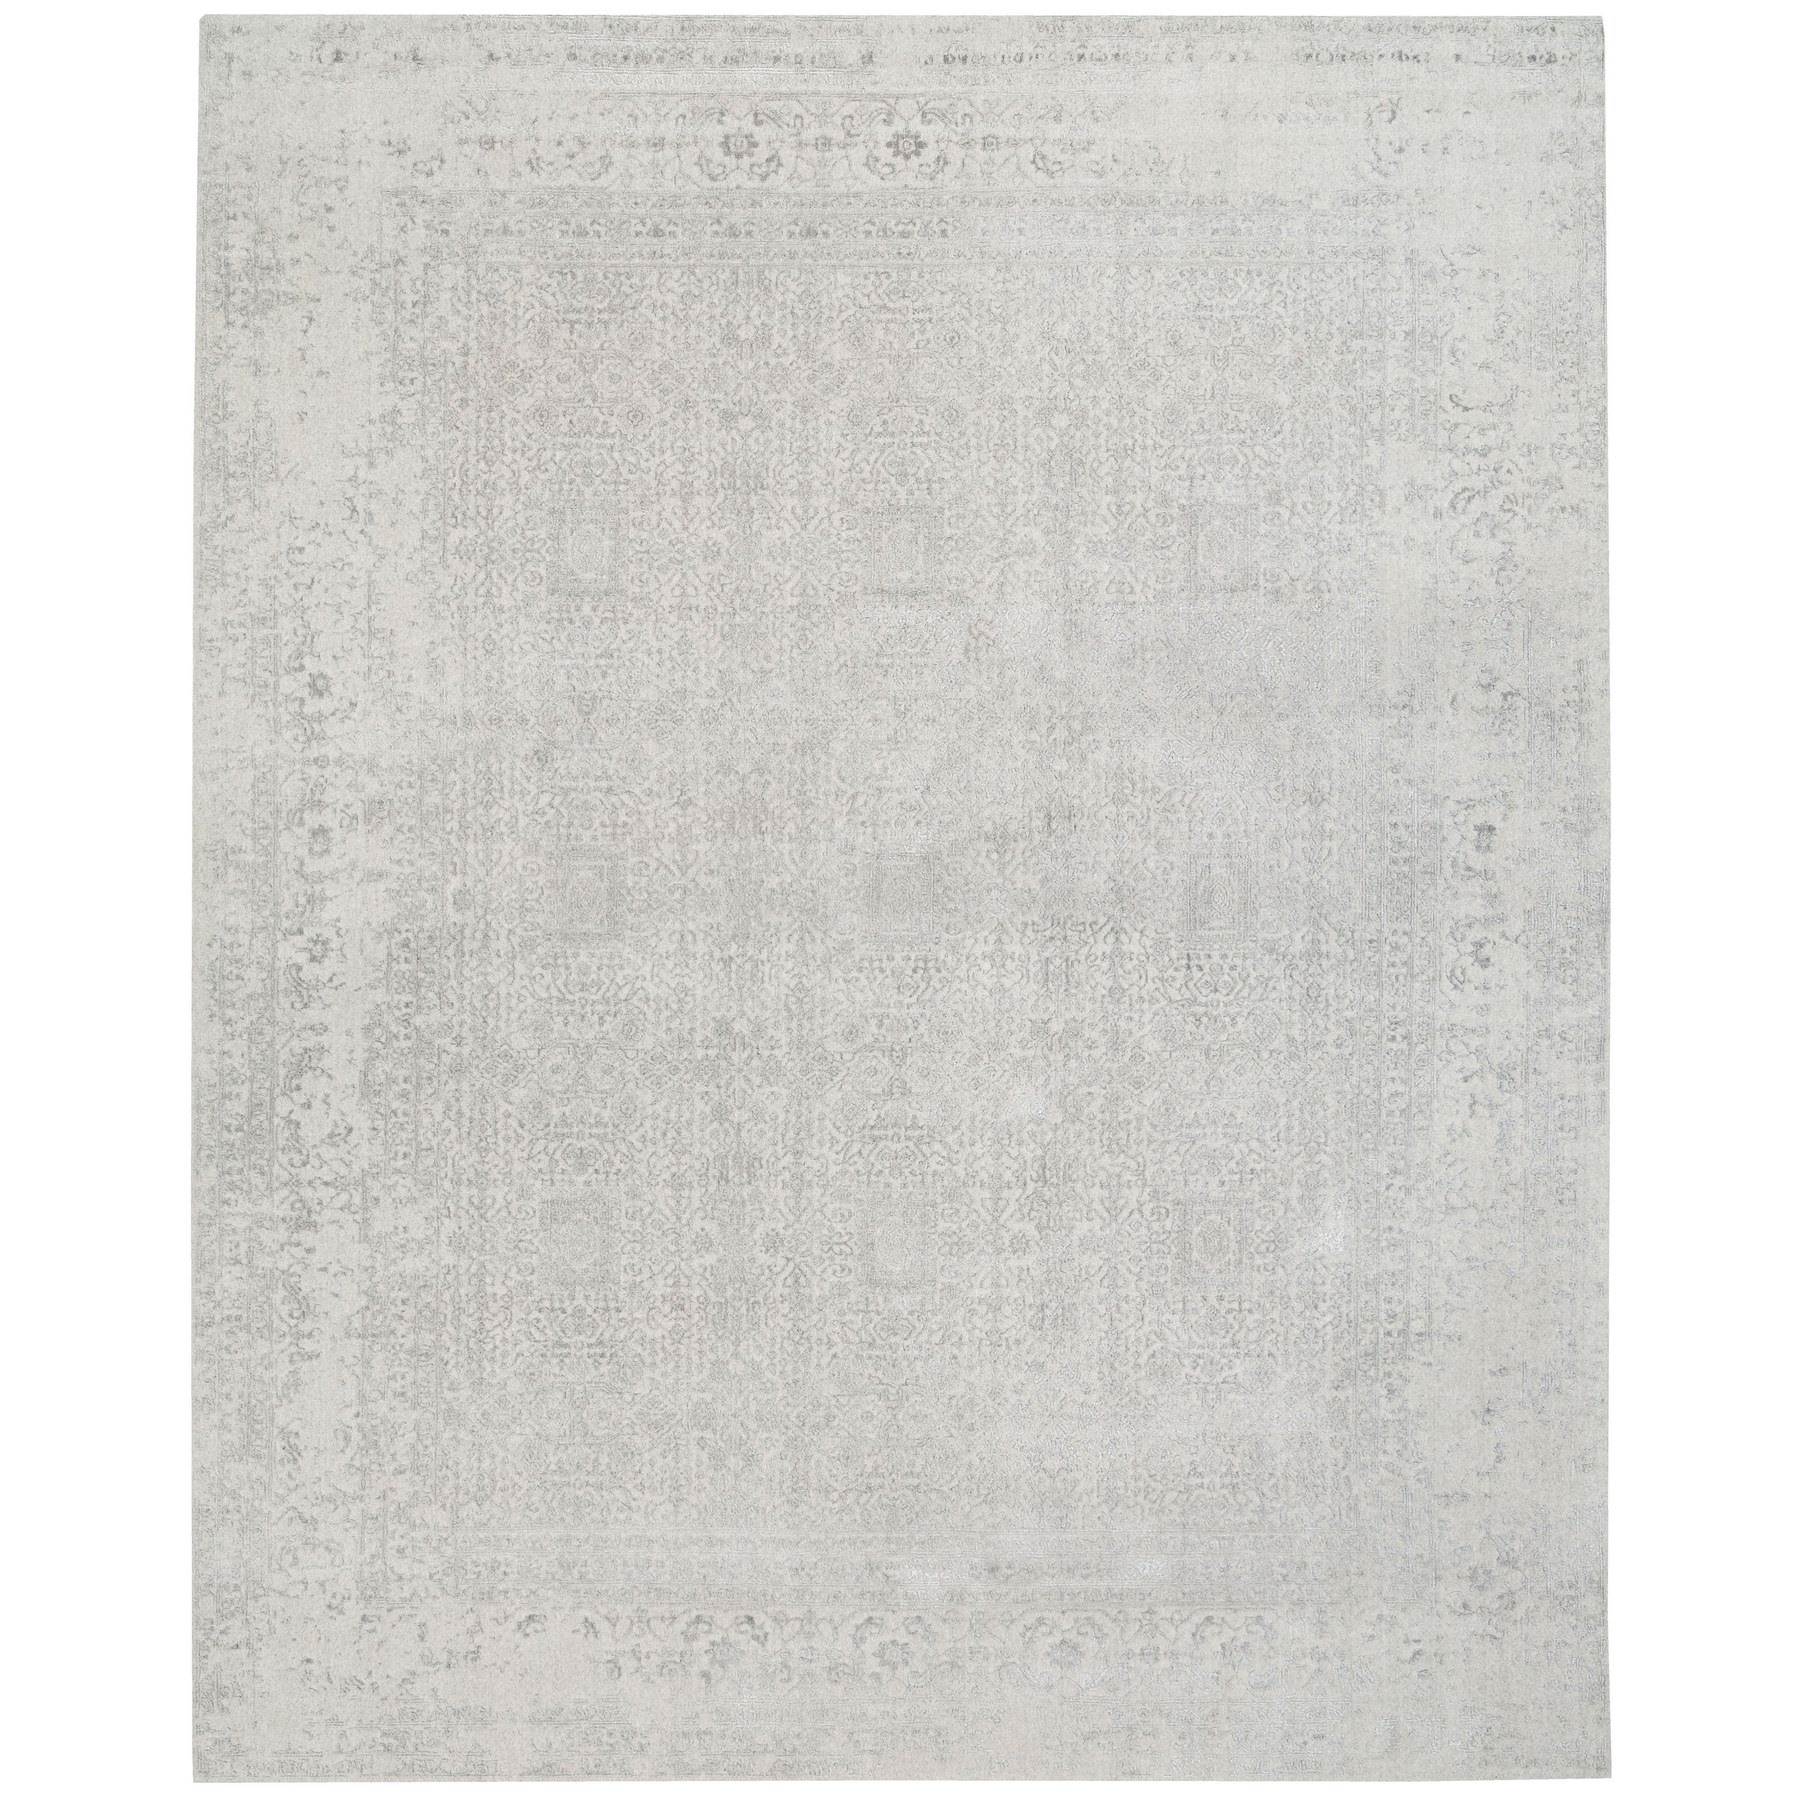 Mid Century Modern Collection Hand Loomed Beige Rug No: 1125672